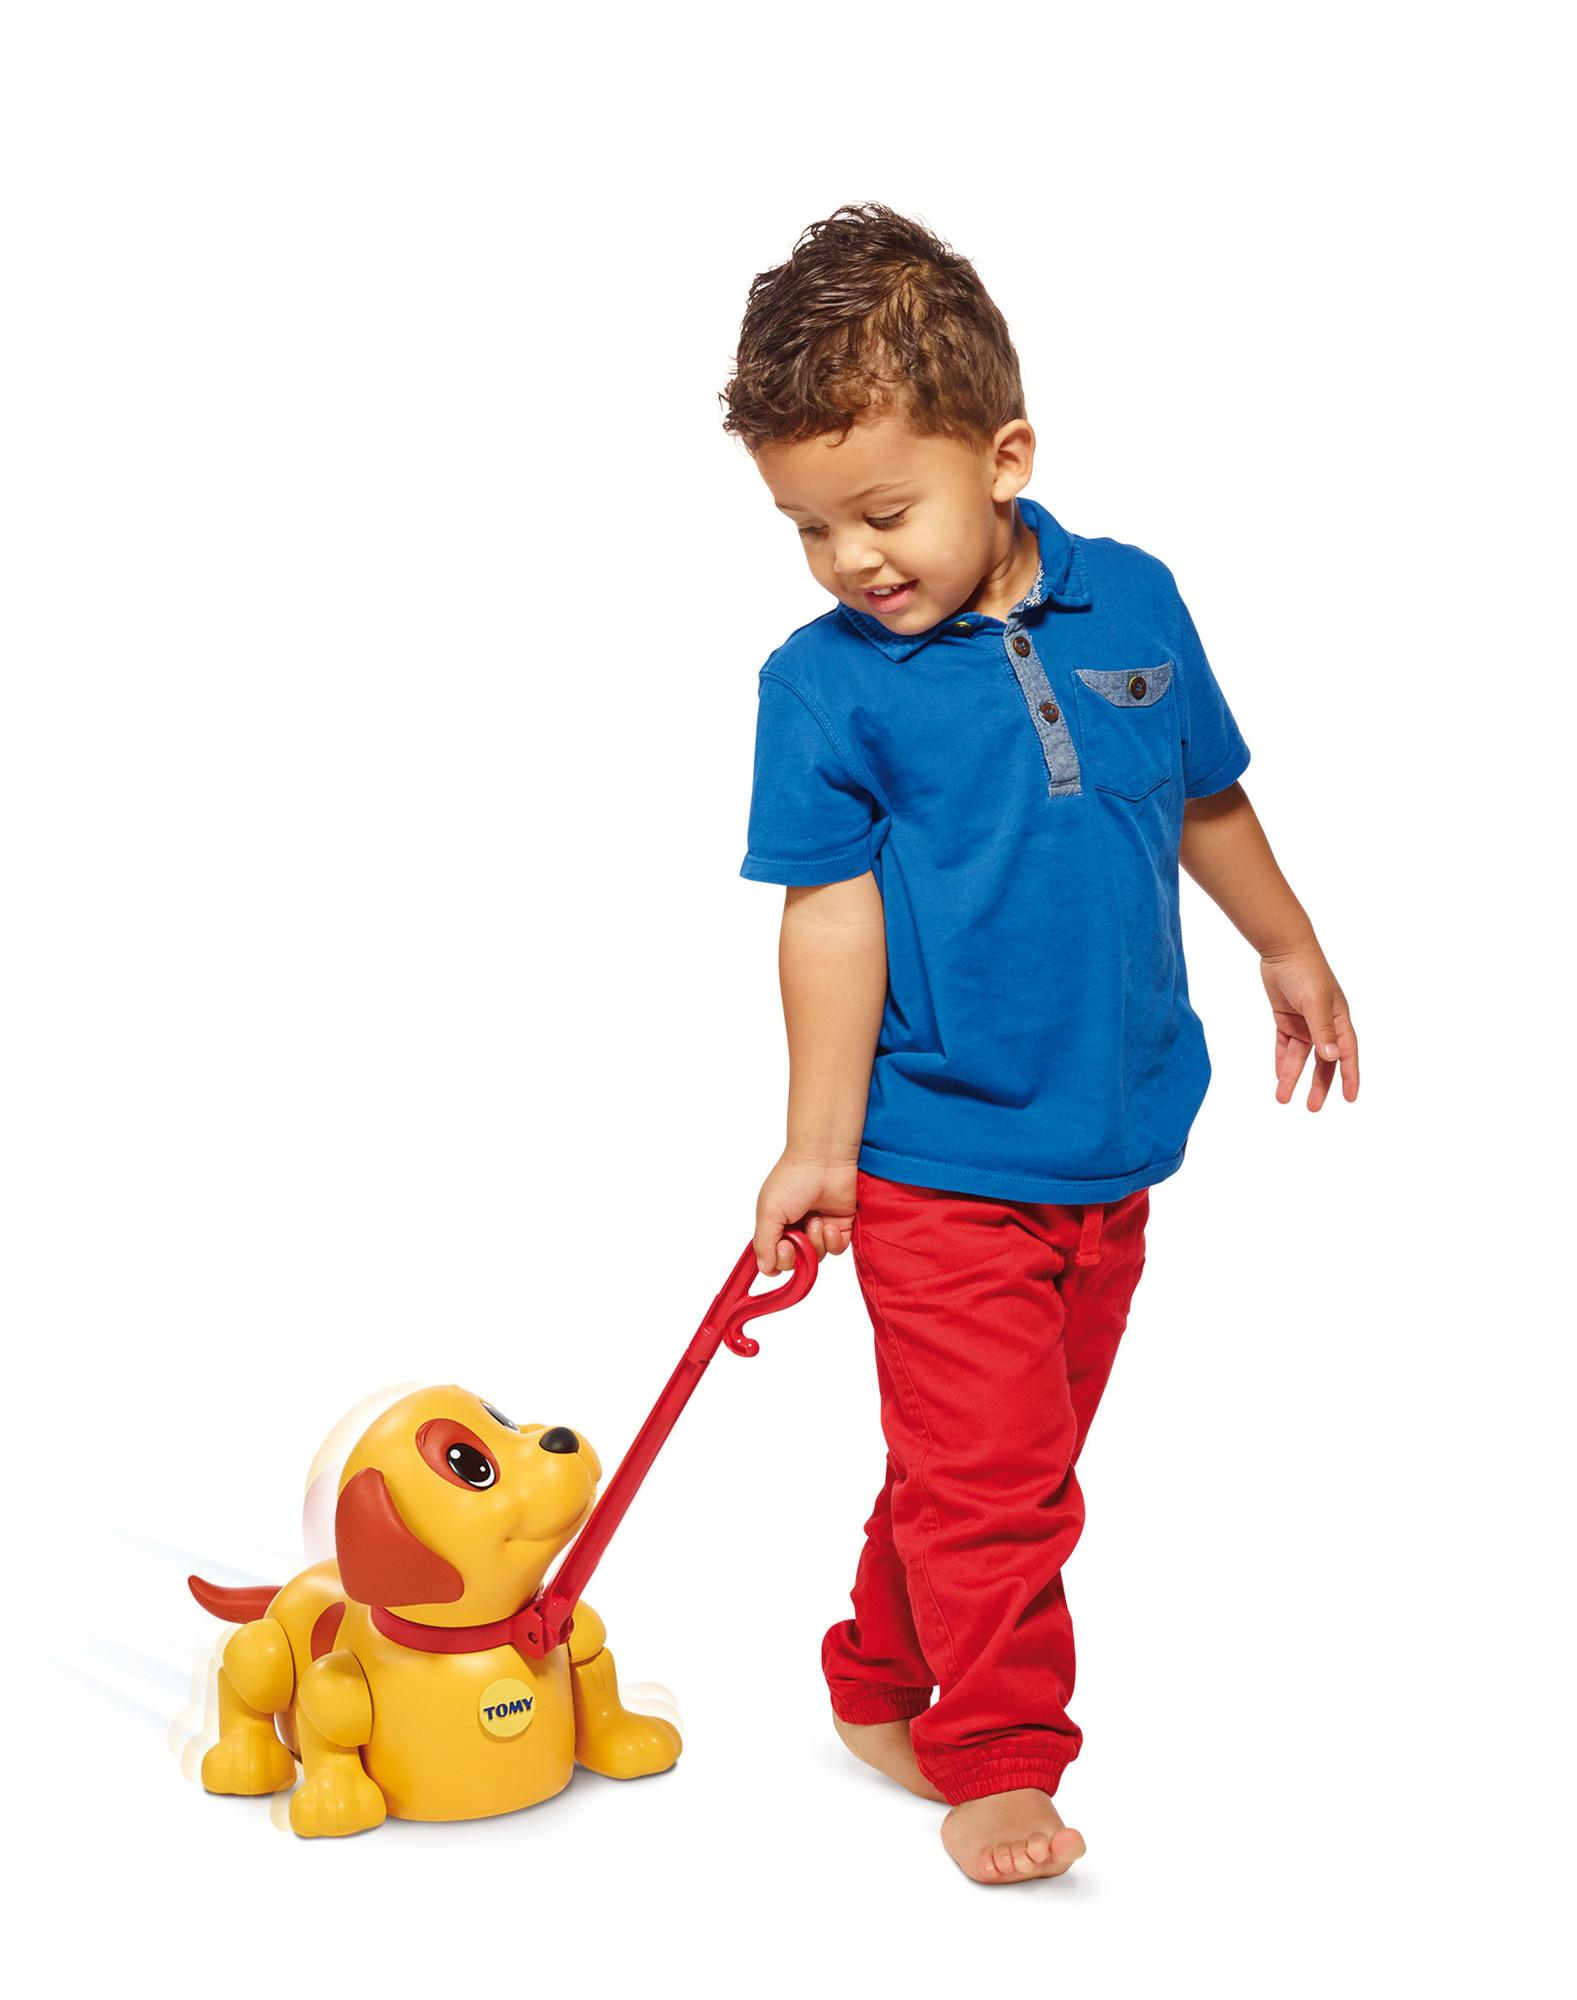 Best Pull Toys For Kids : Tomy kids push pull me puppy toy amazon toys games